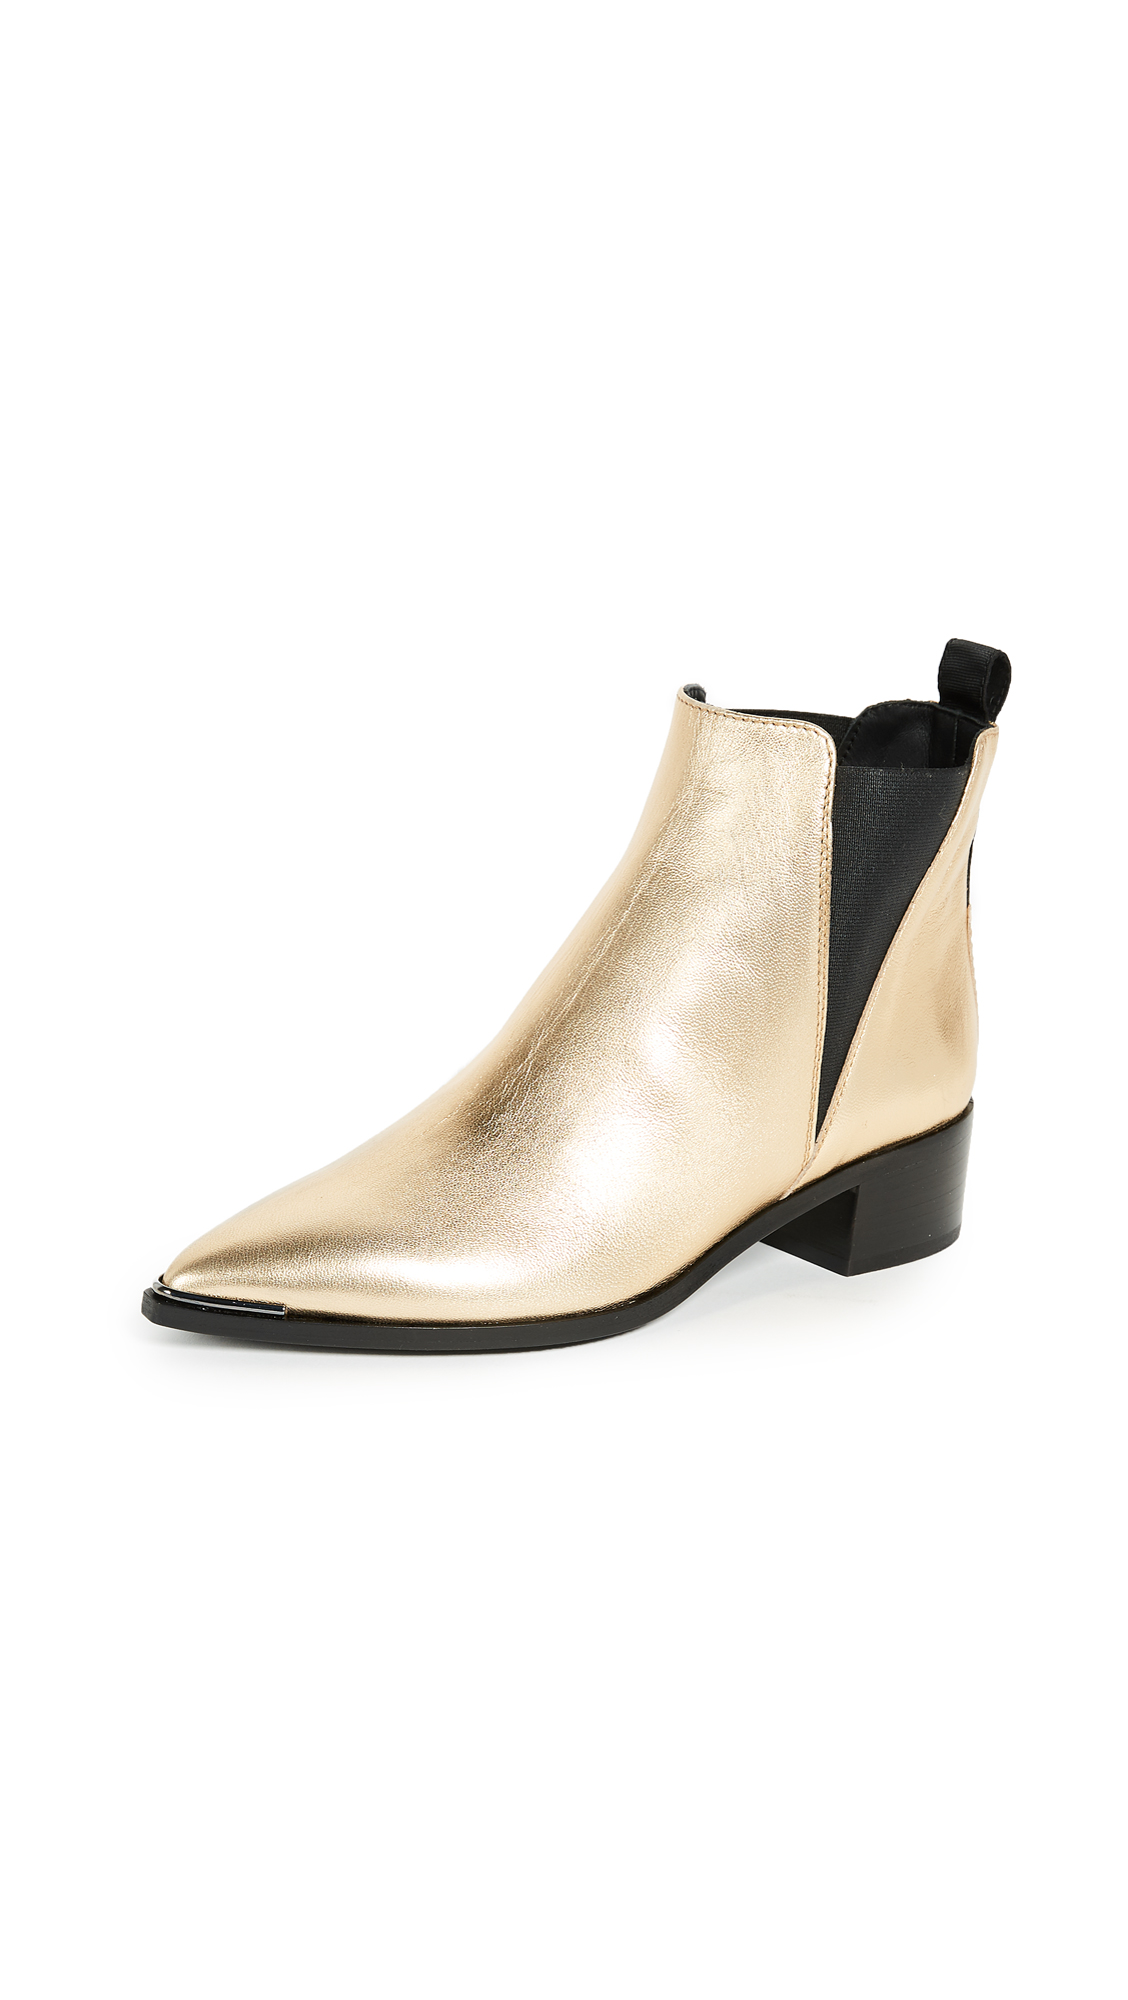 Photo of Acne Studios Jensen Booties online shoes sales